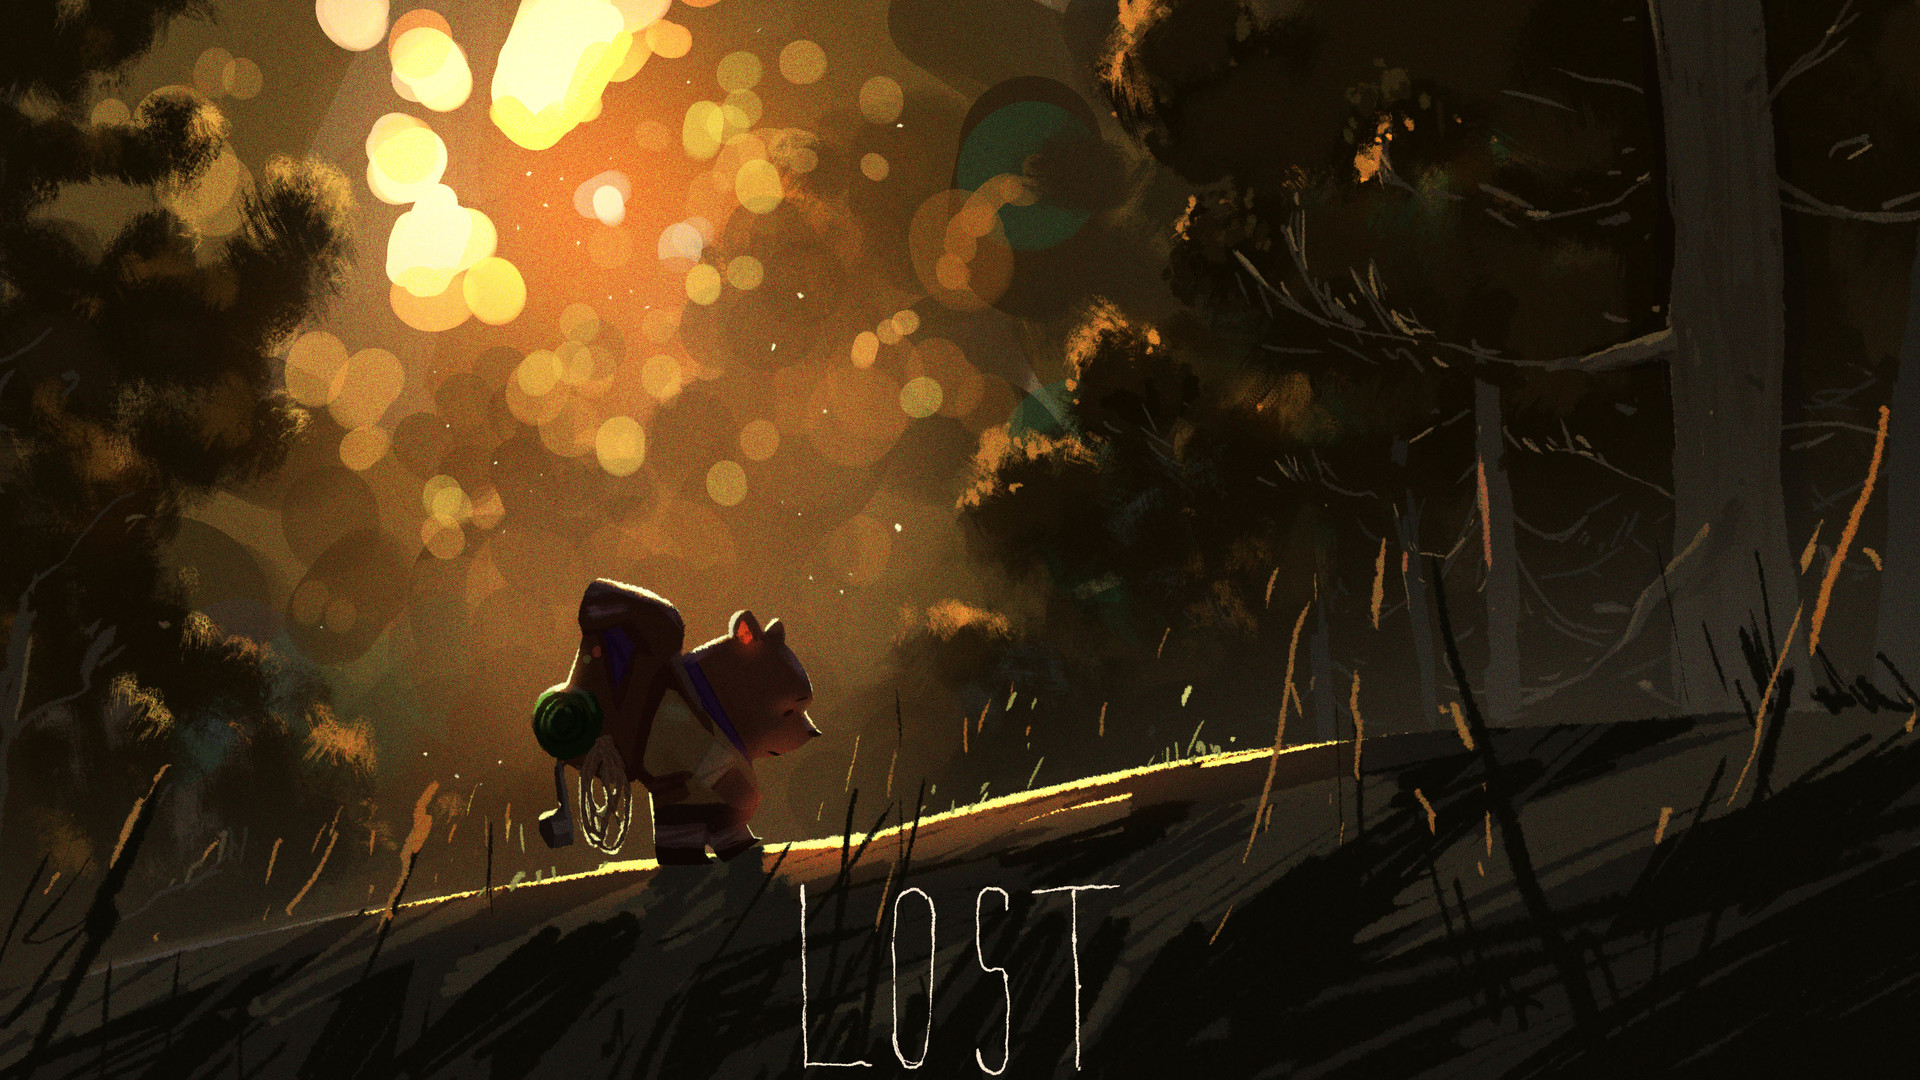 mike redman digital painting illustration Lost 2